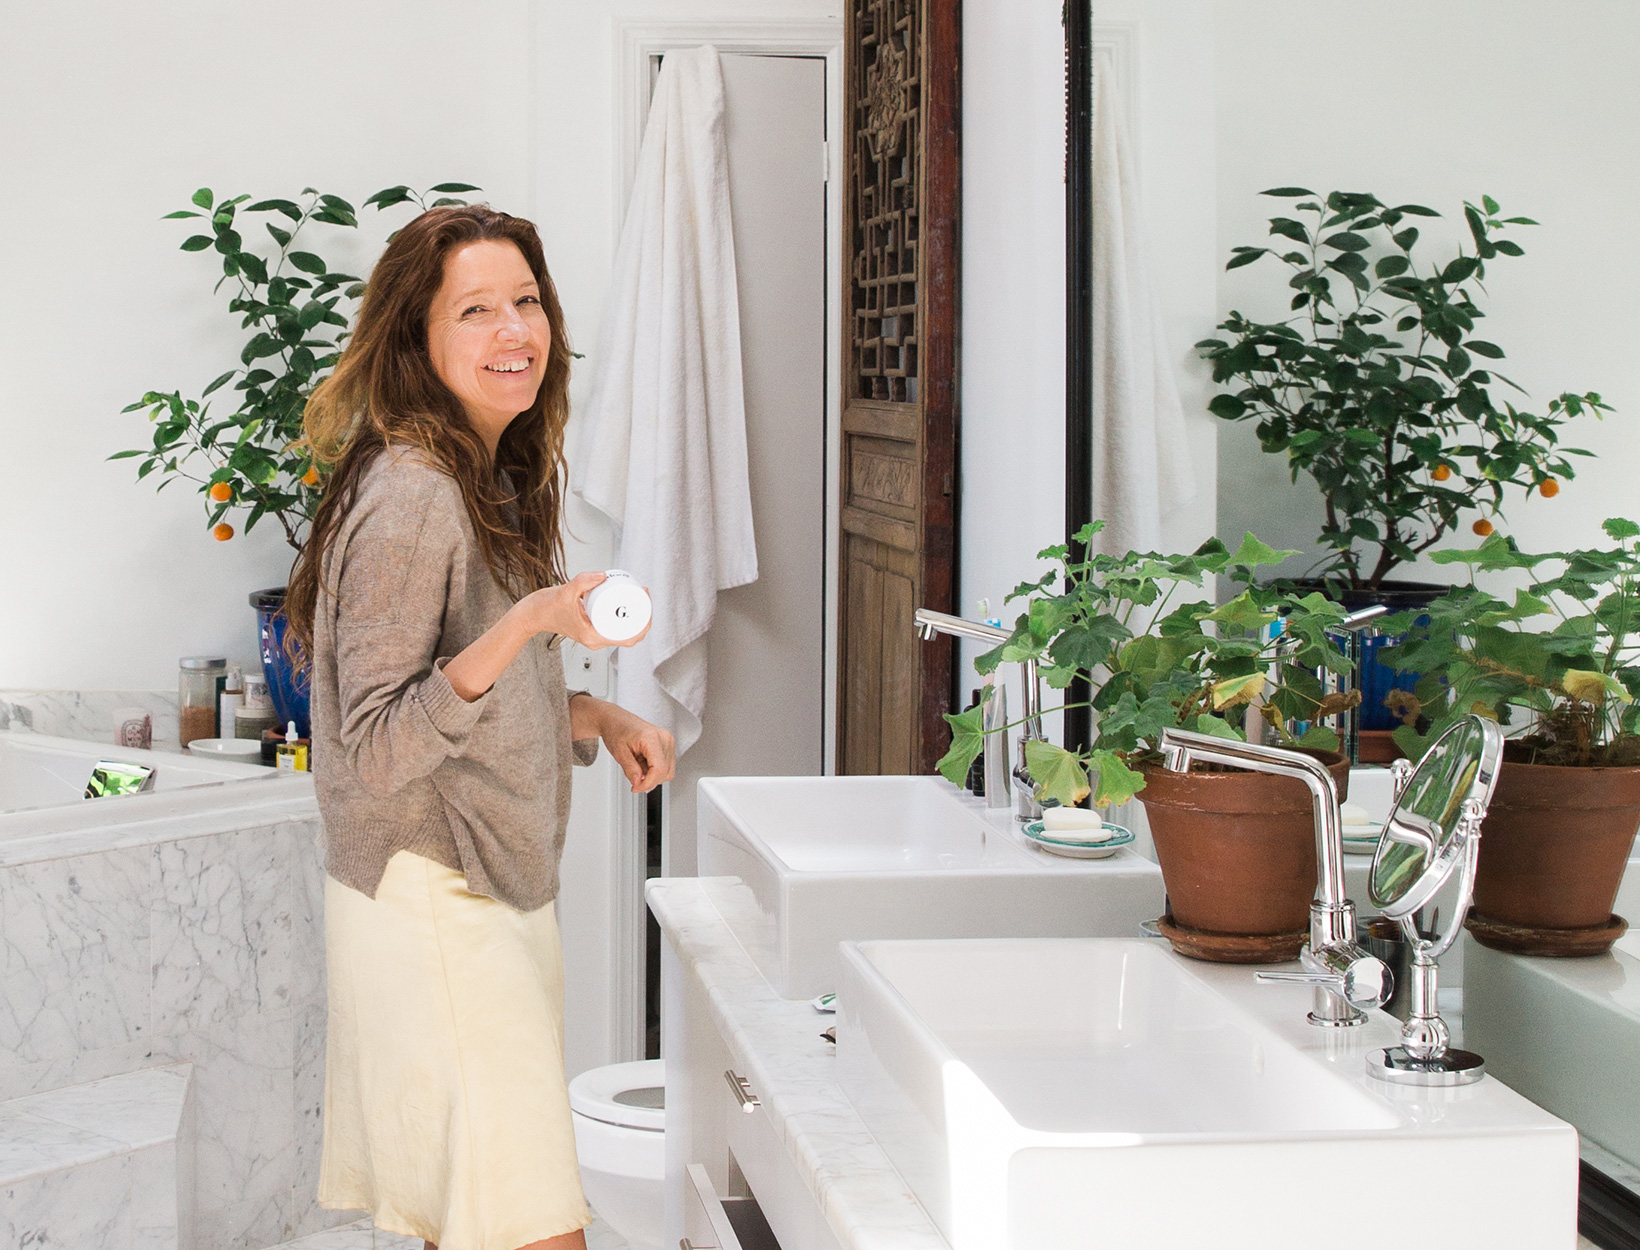 Ask Jean: Step-by-Step Nighttime Routine? | Goop